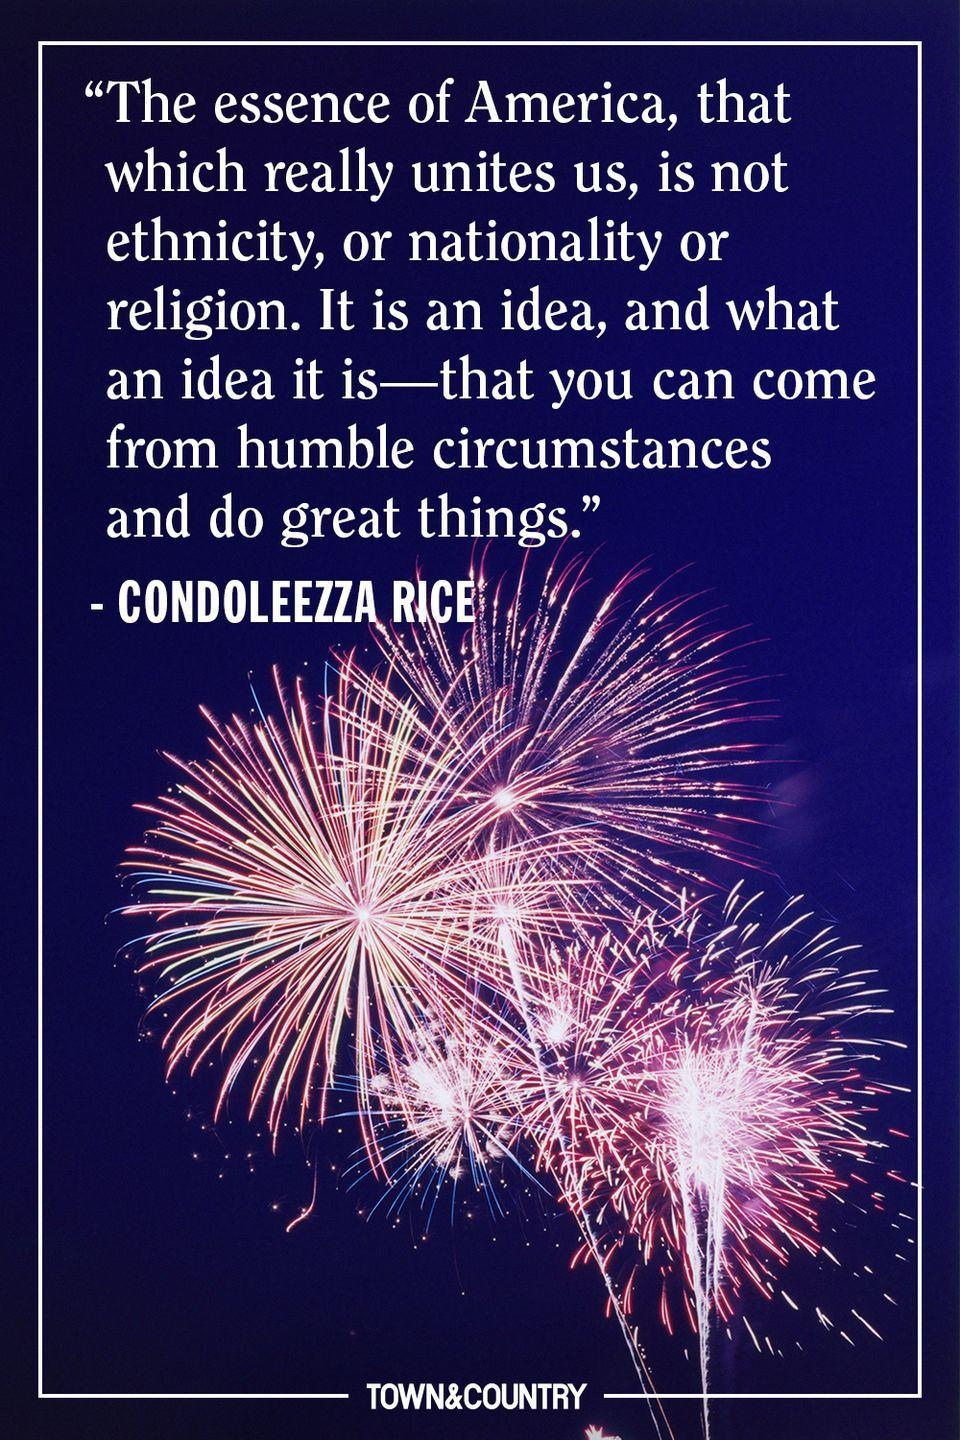 """<p>""""The essence of America, that which really unites us, is not ethnicity, or nationality or religion. It is an idea, and what an idea it is—that you can come from humble circumstances and do great things."""" </p><p><em>— Condoleezza Rice</em></p>"""